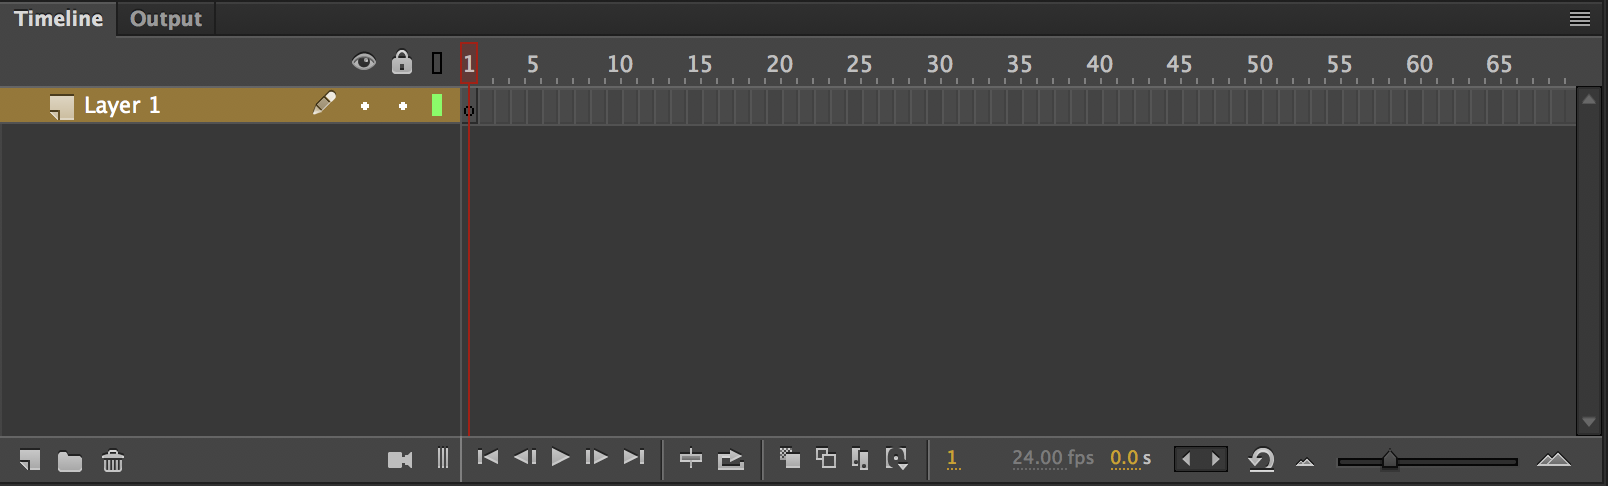 The Animate timeline looks incredibly similar to the timeline from Flash and is defined by the frame count. The seconds timer is located in the lower right panel next to the FPS counter.